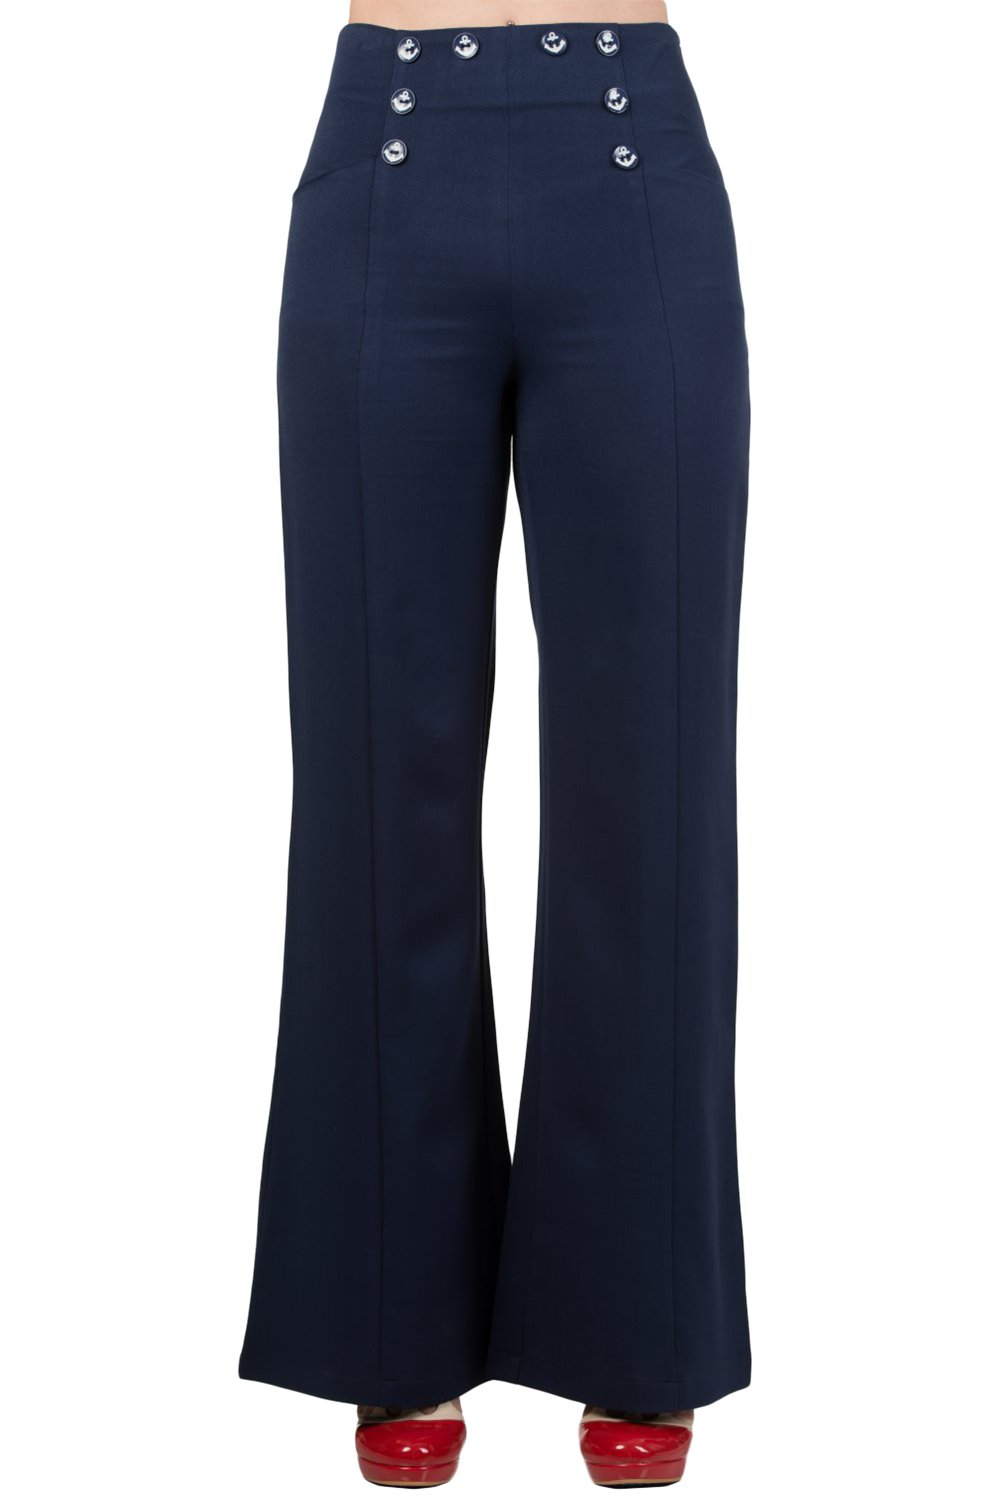 Banned 50's Vintage Sailor High Waist Double Buttoned Wide Leg bell flare Pants (S, Navy) by Banned Apparel (Image #1)